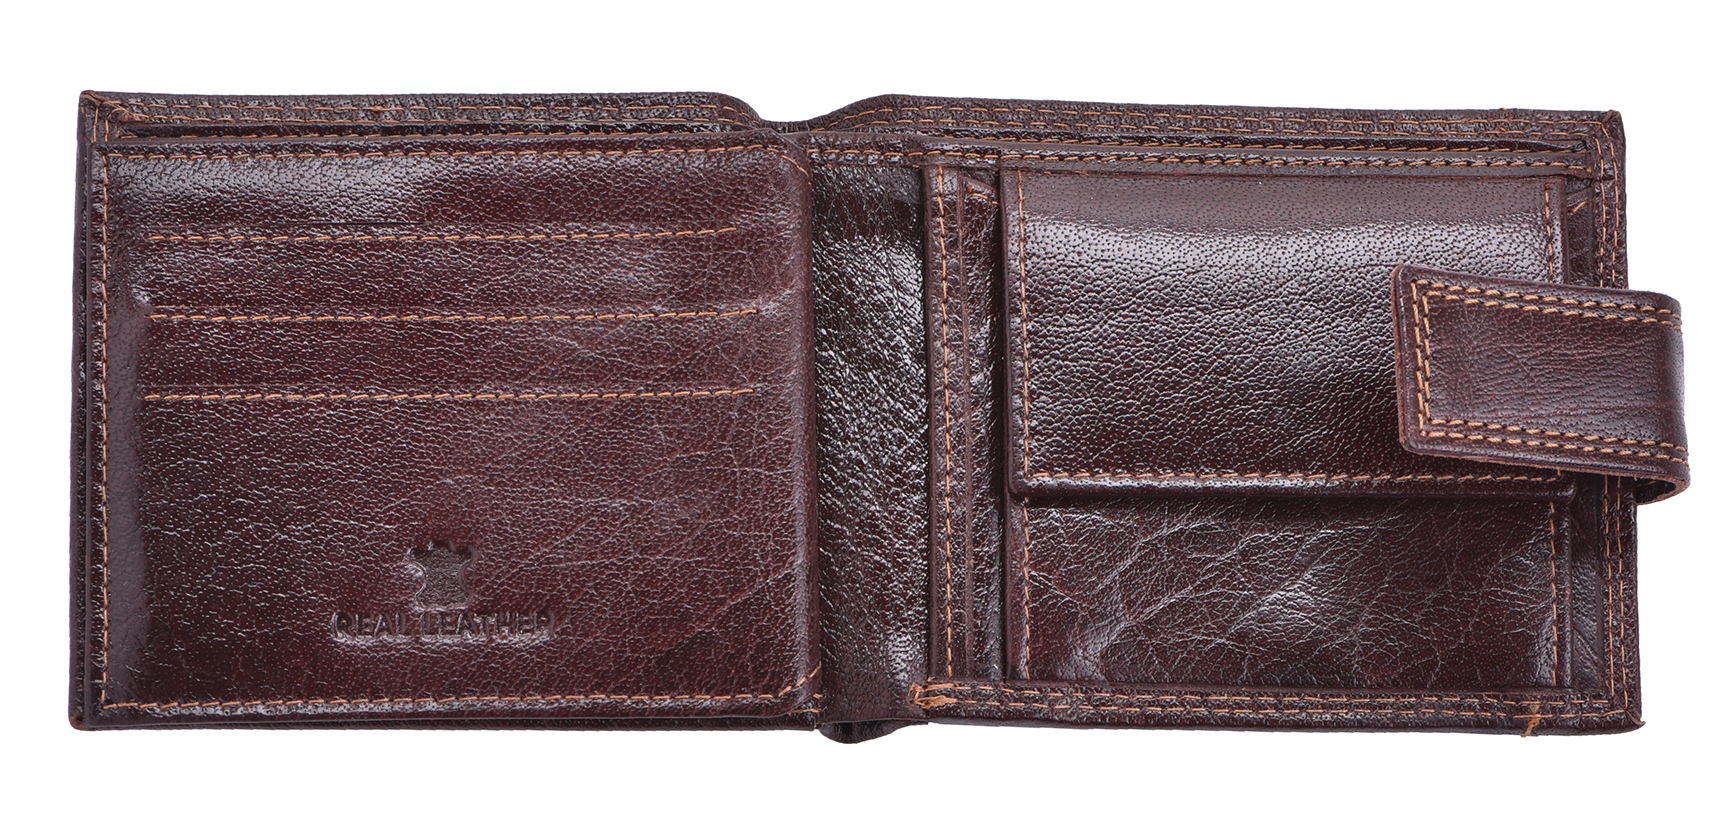 Luxe-Veritable-Grained-Cuir-Homme-Flip-Out-Wallet-Purse-Coin-Holder-Brown miniature 4